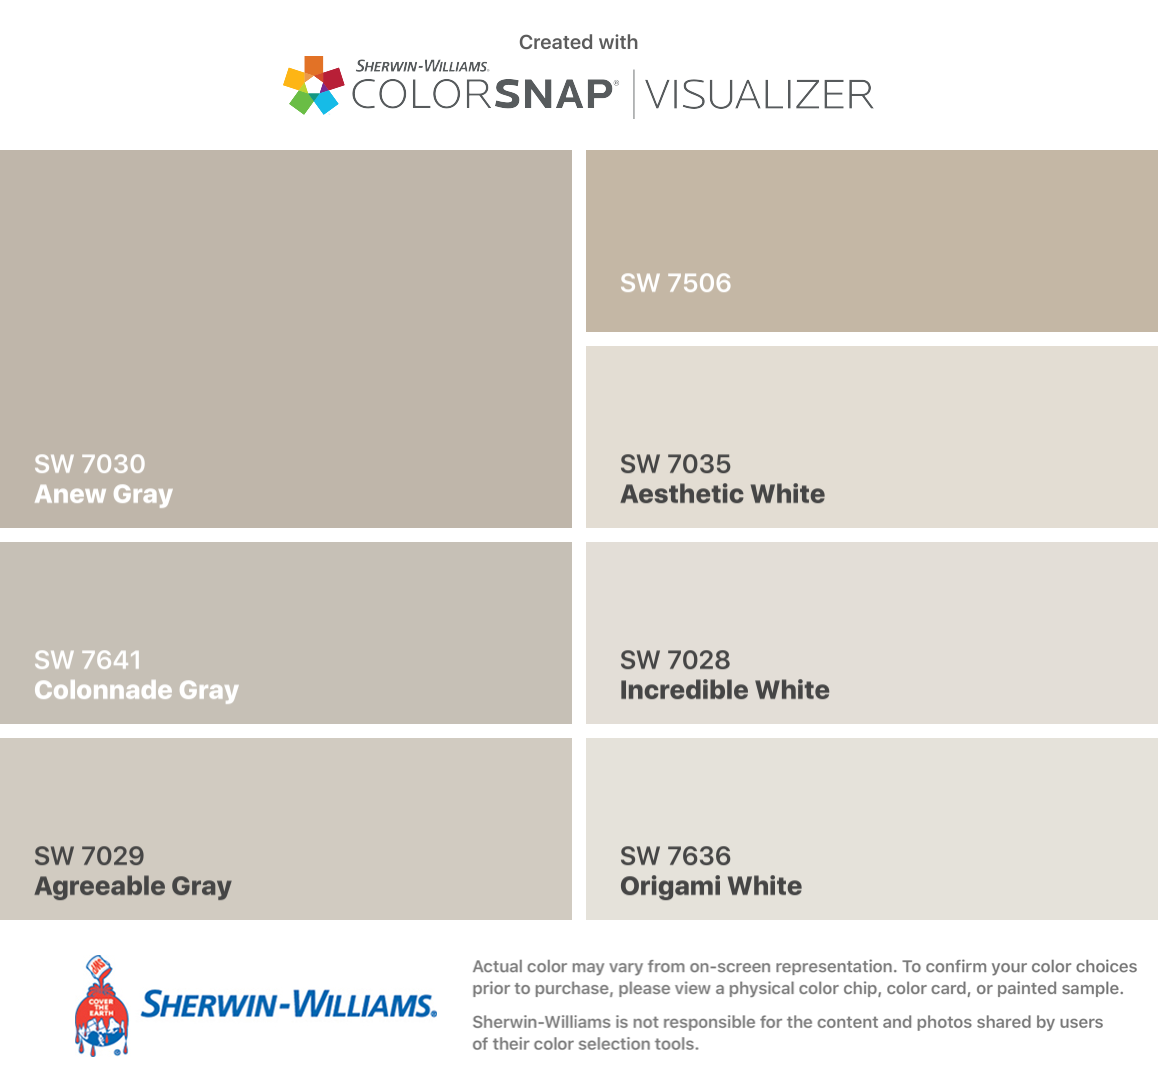 I Found These Colors With Colorsnap Visualizer For Iphone By Sherwin Williams Anew Gray Sw 703 Matching Paint Colors Paint Colors For Home Grey Paint Colors